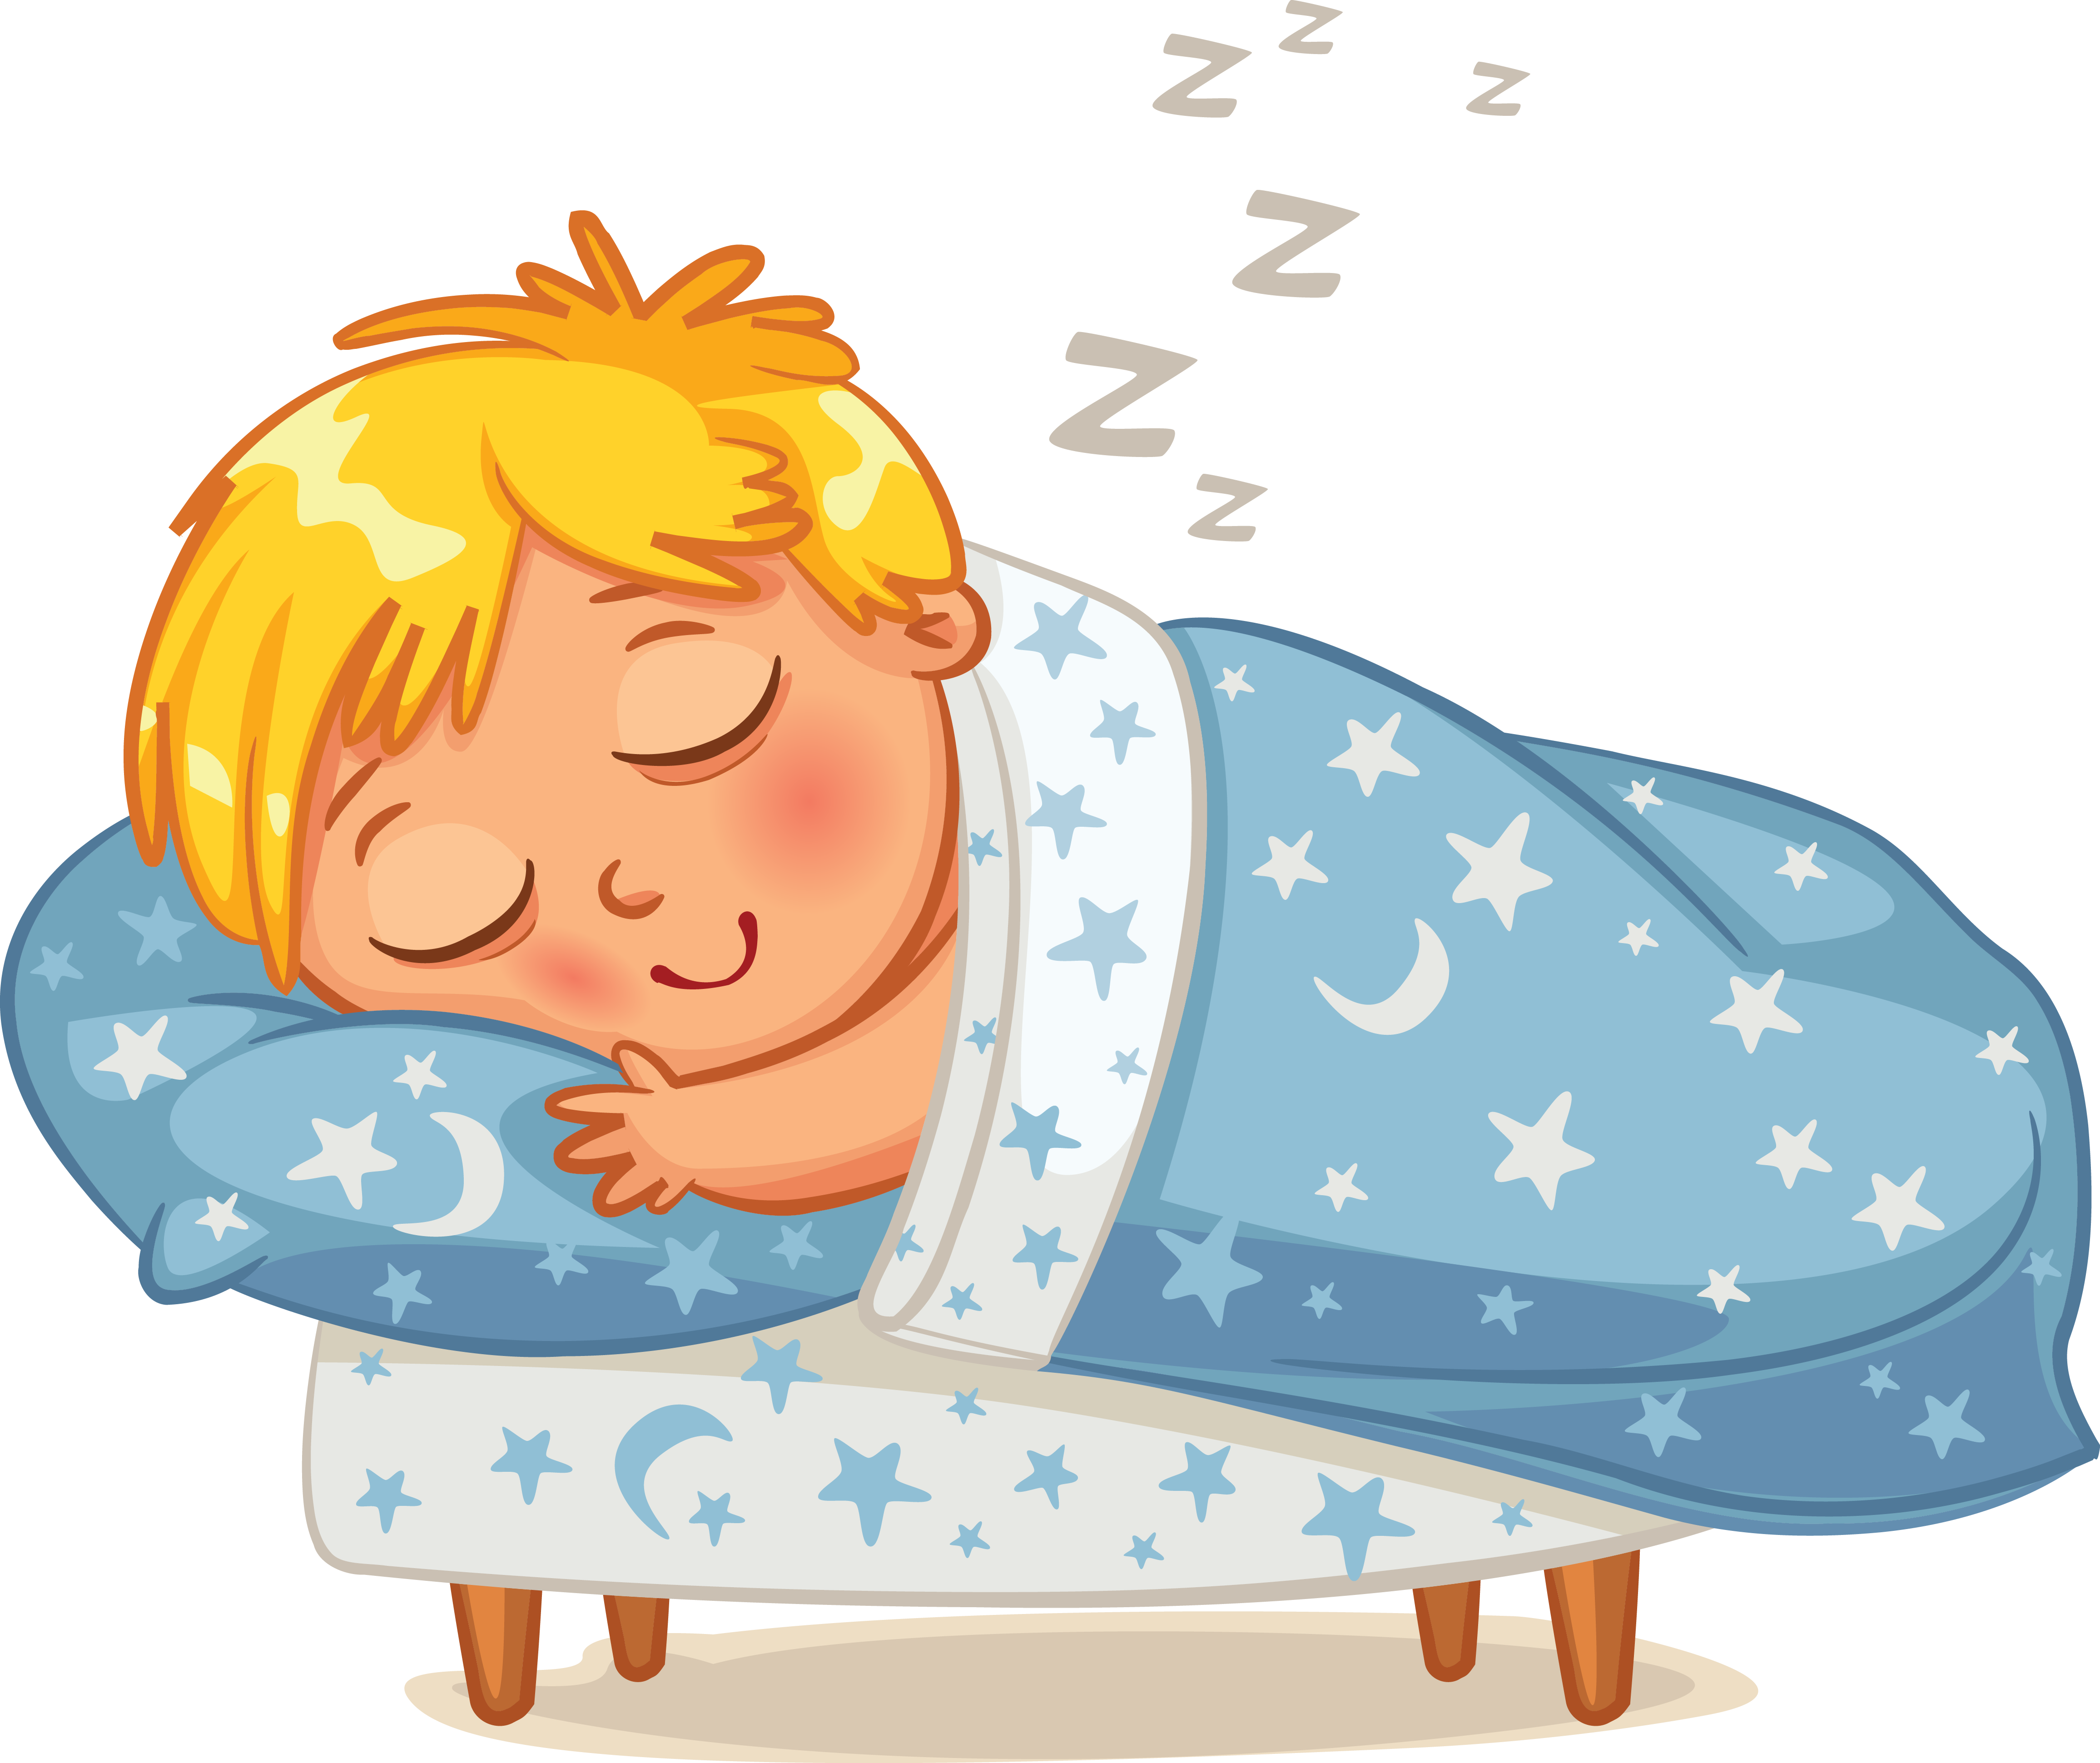 Go to bed clipart toddler sleeping pictures on Cliparts ...